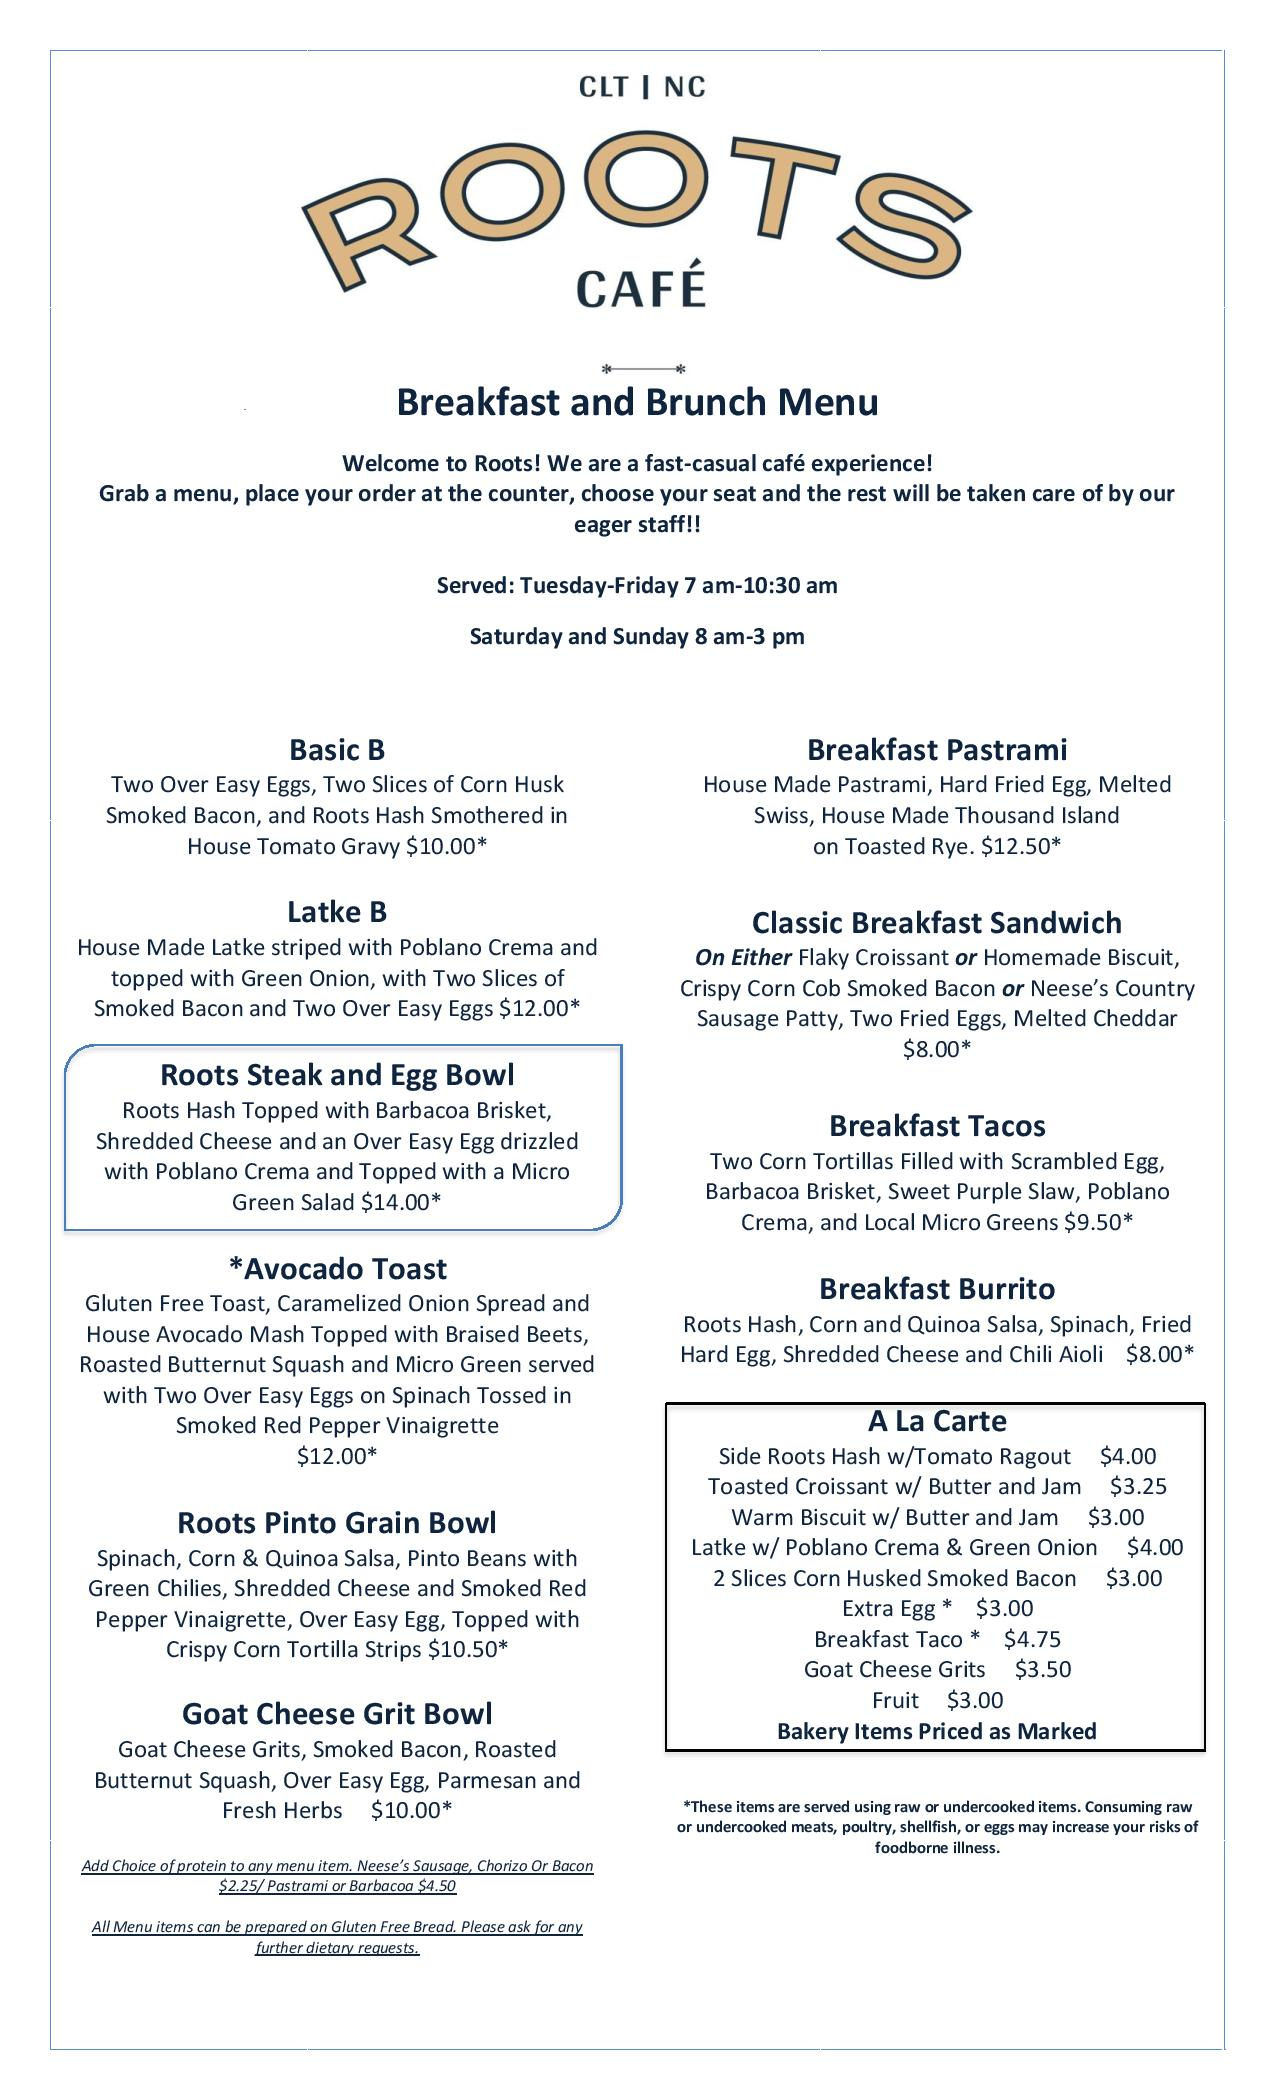 breakfast menu 1-9-19 pfg.jpg